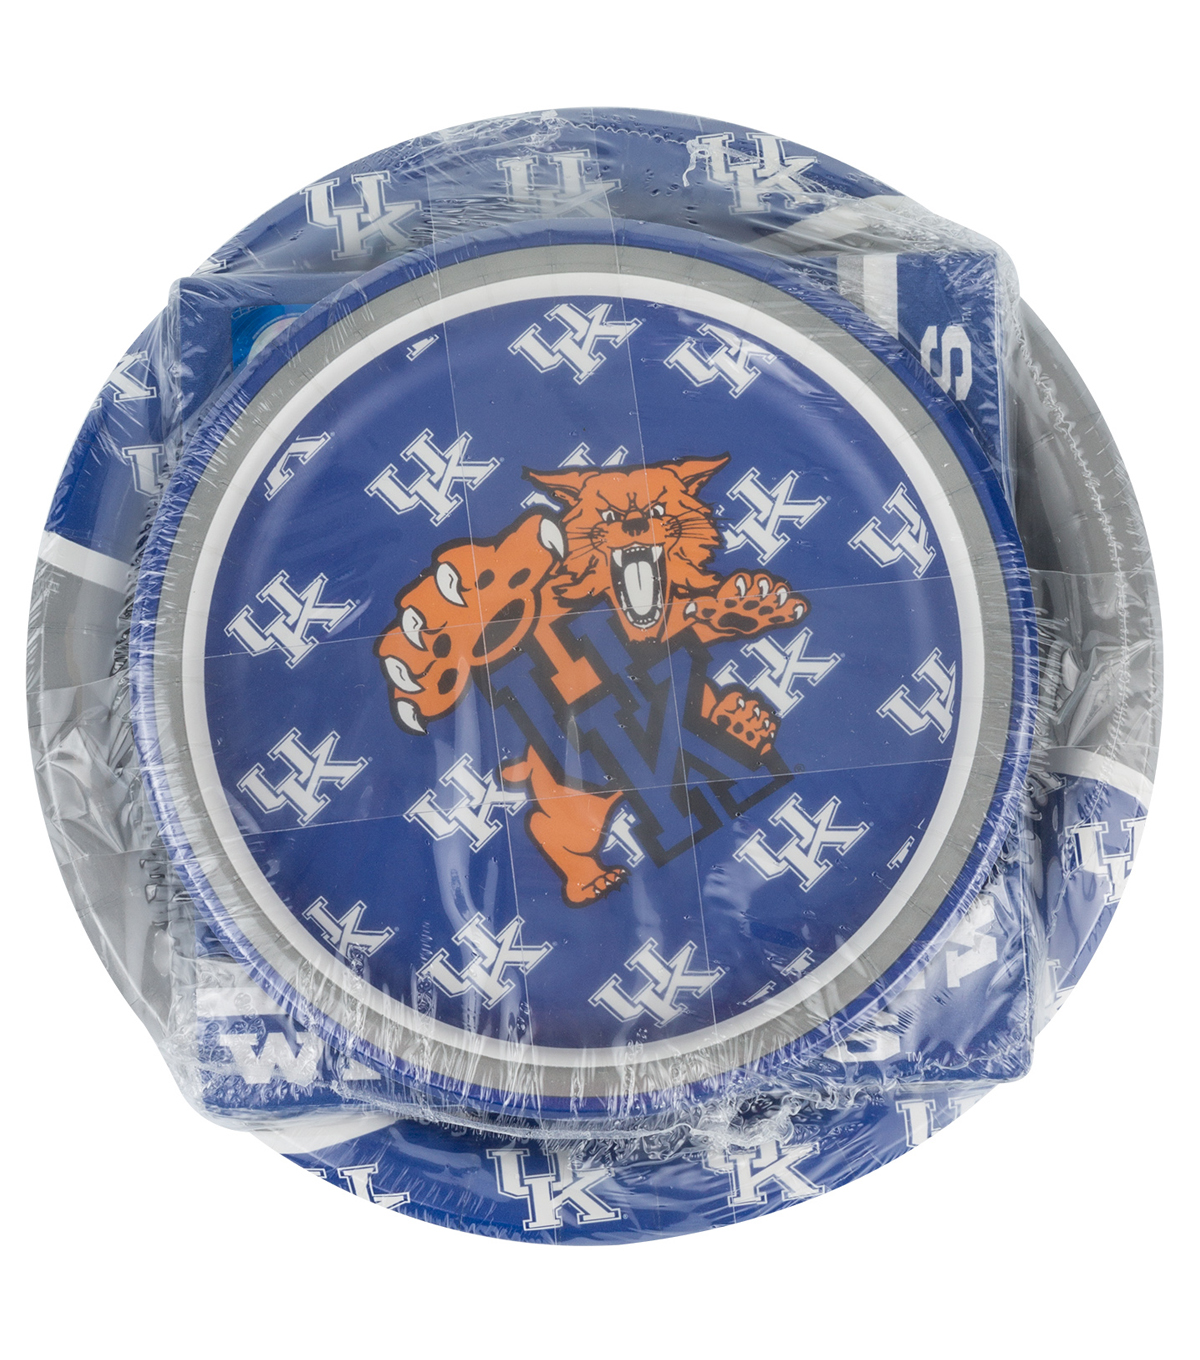 University of Kentucky Plate & Napkin Set